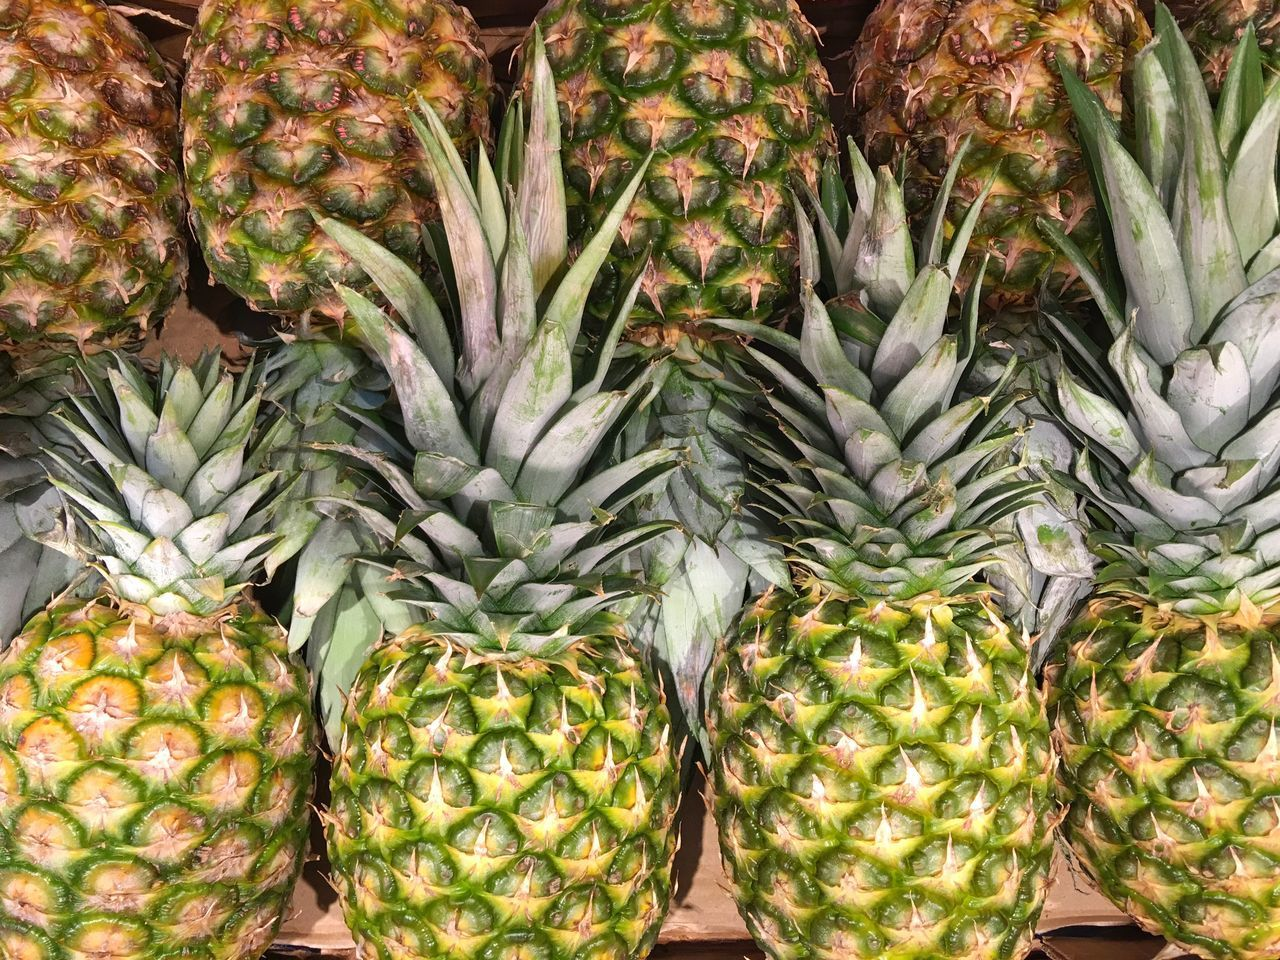 Pineapples Freshness Food And Drink Market Food For Sale Healthy Eating Market Stall Retail  Exotic Fruits Consumerism High Angle View Business Close-up Abundance Choice Retail Display Organic Healthy Lifestyle Sale Selective Focus Beautifully Organized